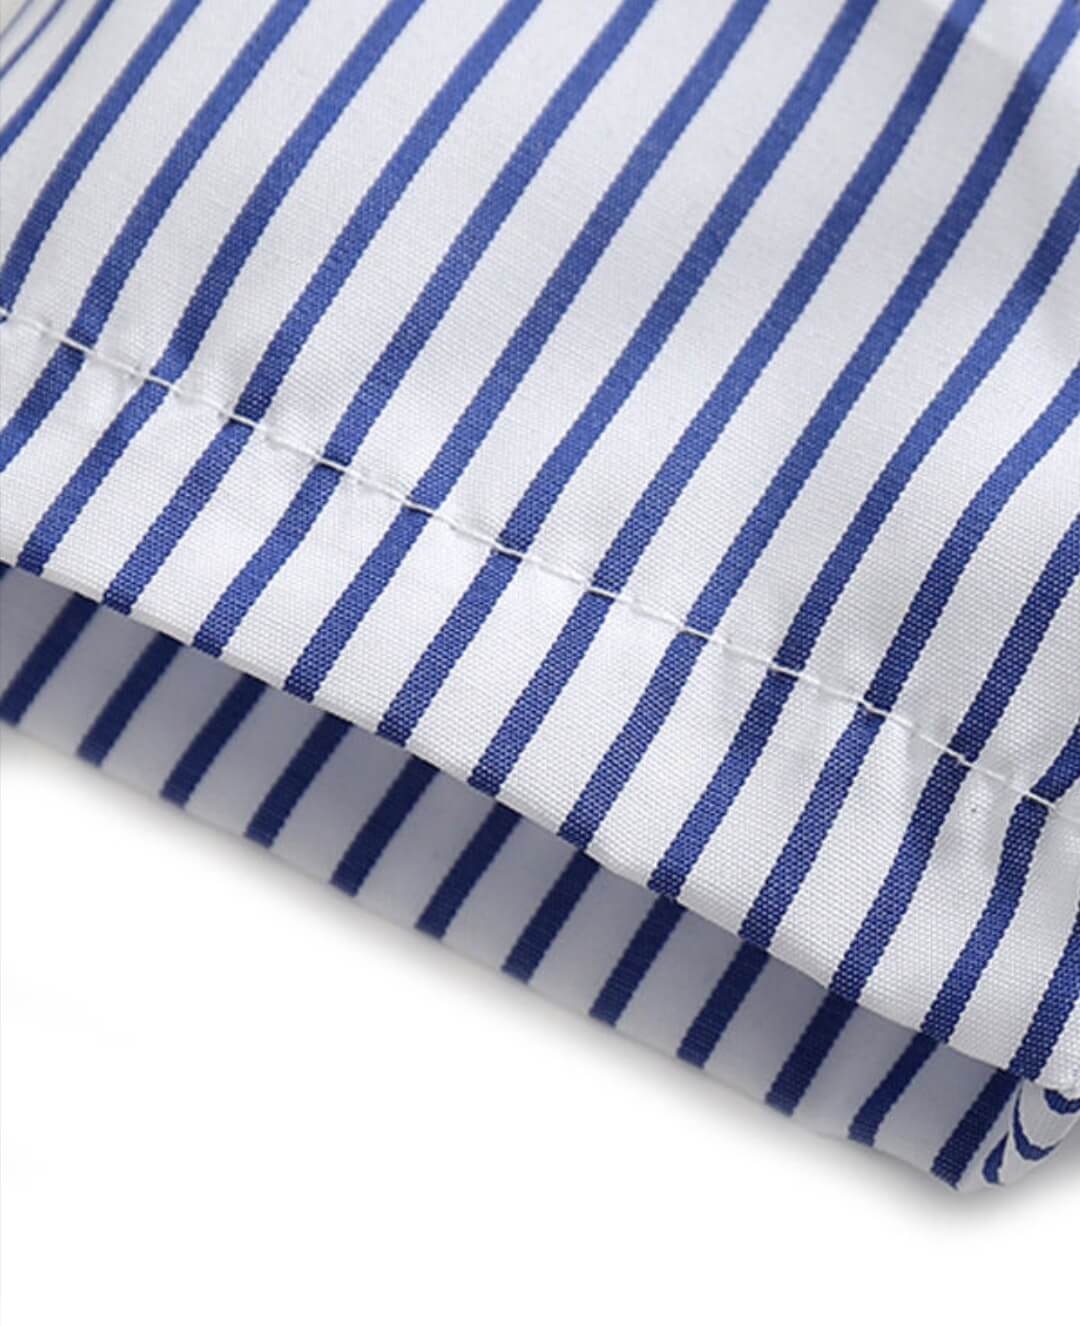 2 piece summer casual outfit stripe shirt for boys